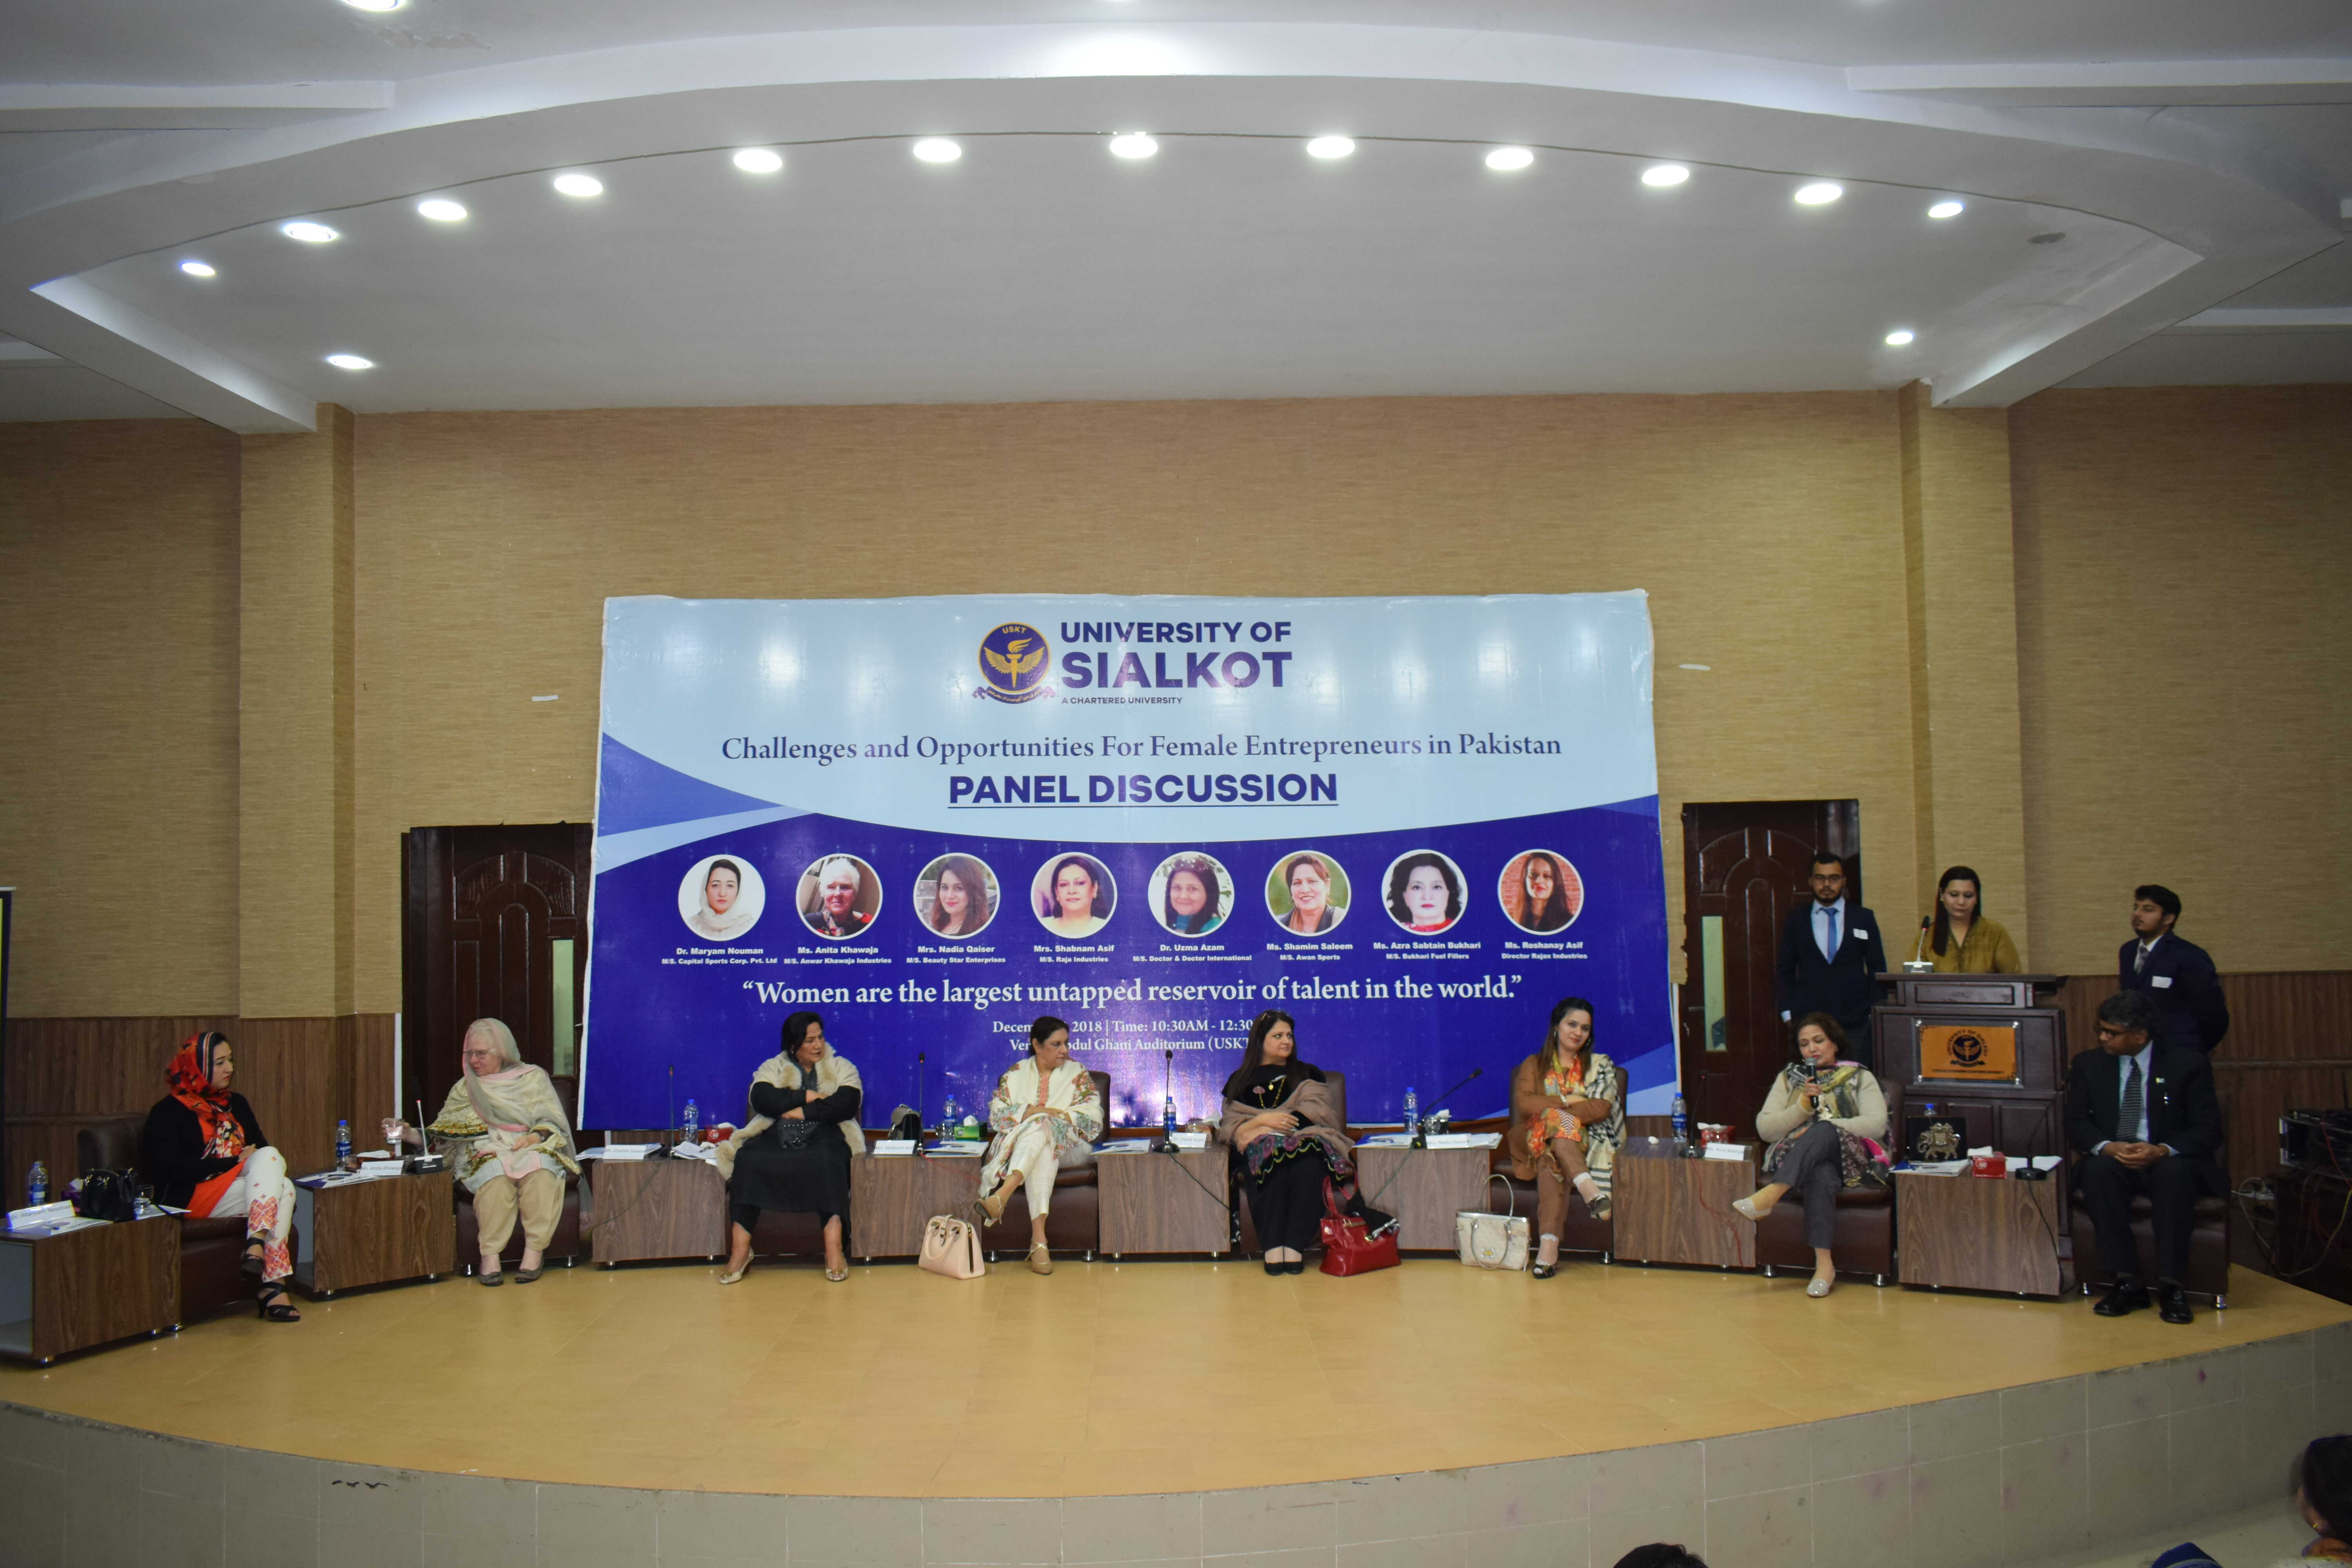 A Panel Discussion organized by University of Sialkot and the group of women entrepreneurs graced the event as the guest speakers. According to the agenda of the talk, they threw light on the opportunities for females and the working organizations under their successful leading roles.